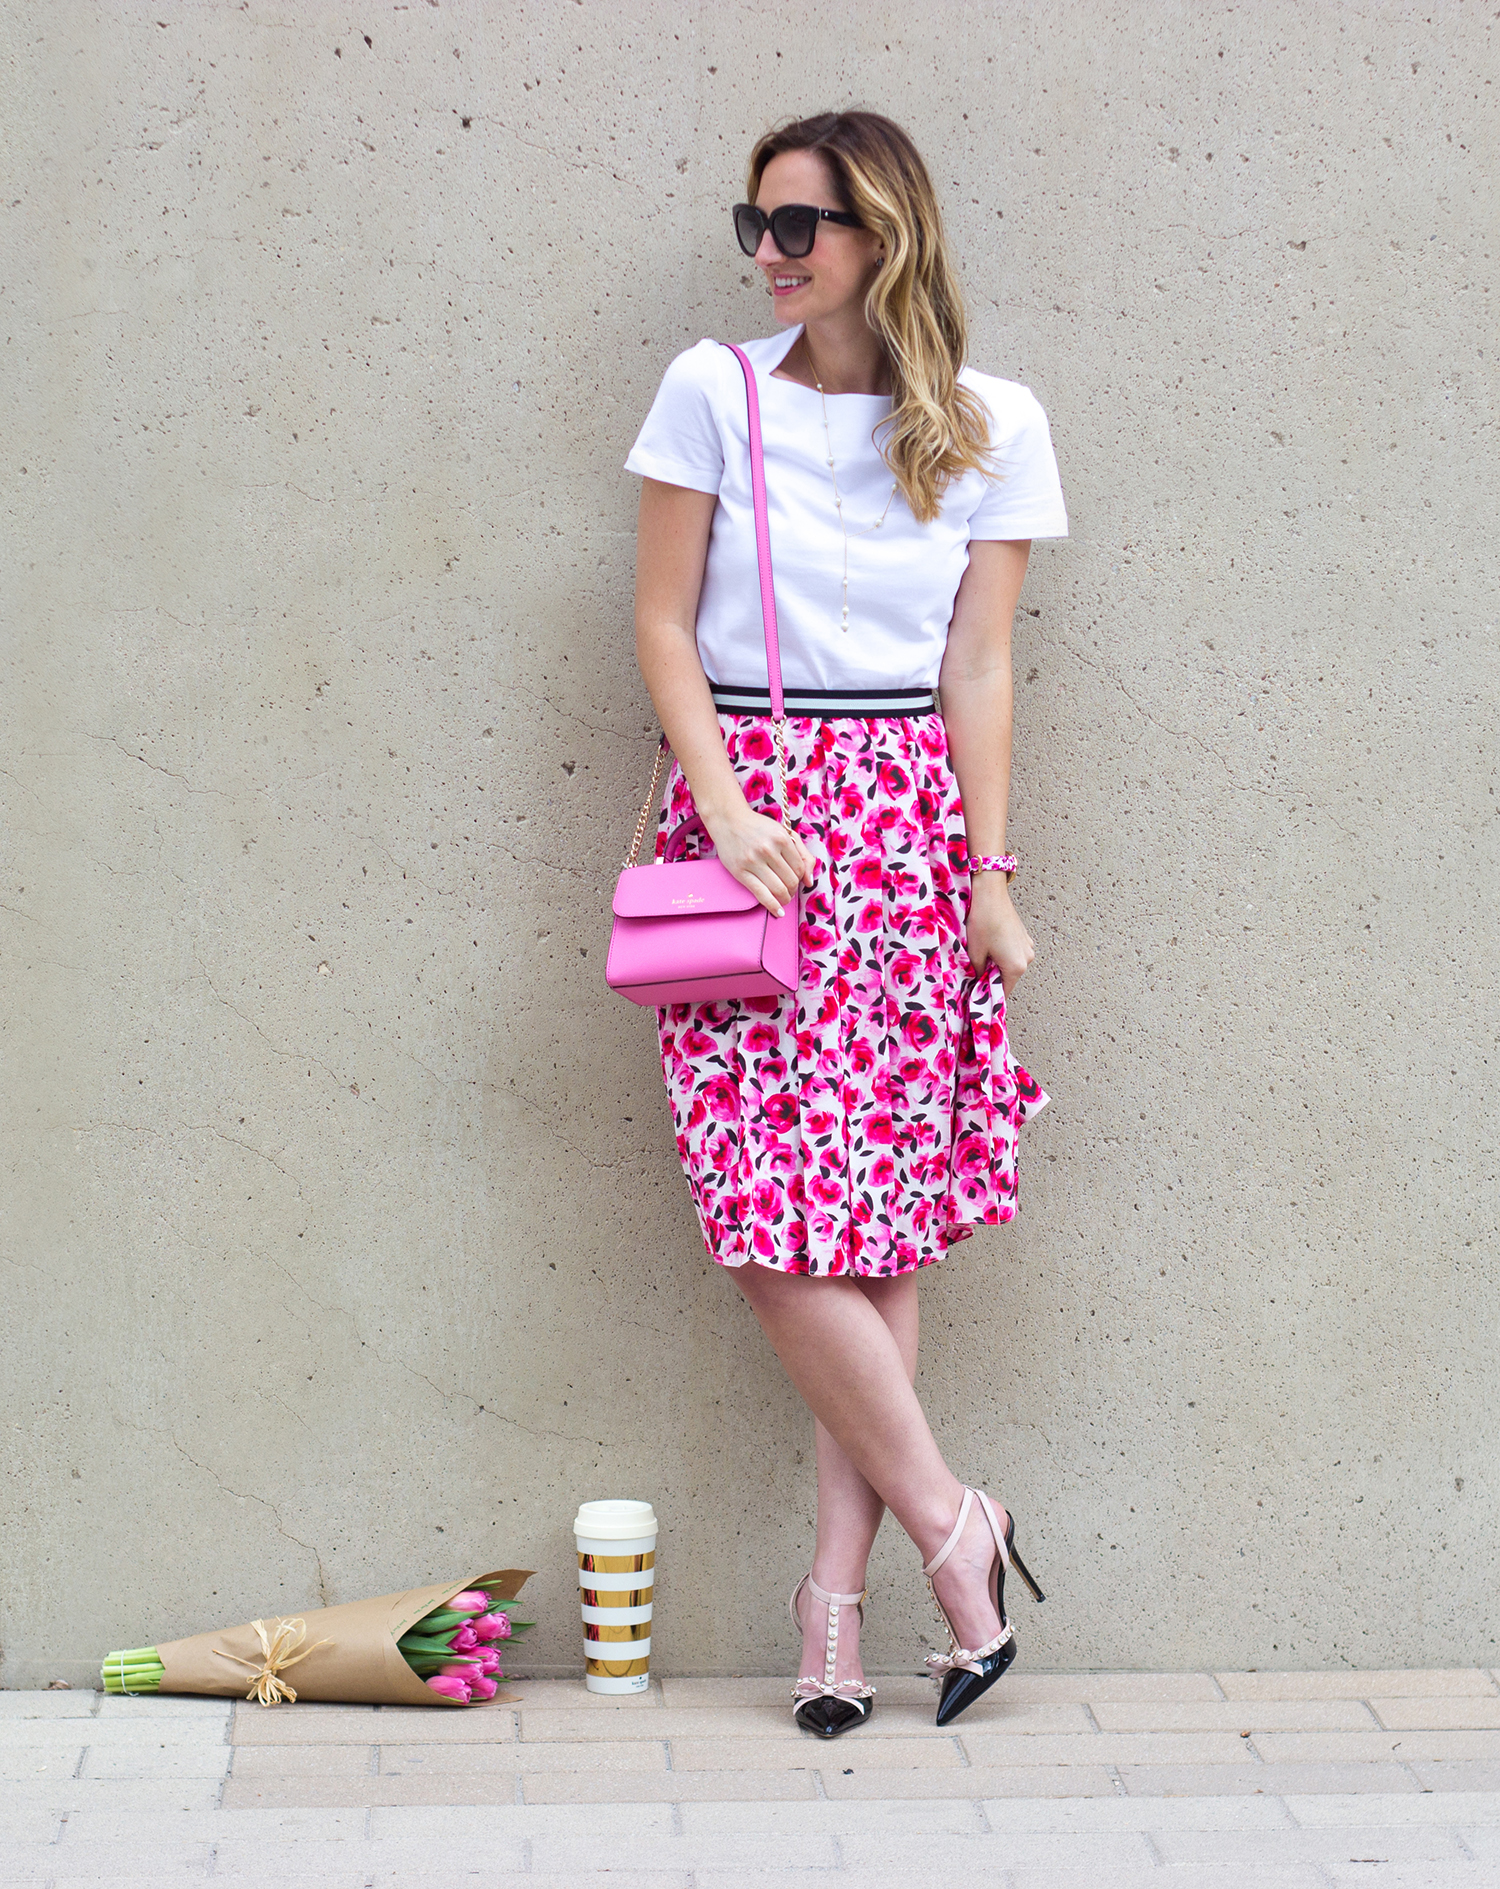 livvyland-blog-olivia-watson-austin-texas-fashion-blogger-kate-spade-broome-street-everyday-tee-white-rose-pleated-skirt-pink-black-spring-outfit-6